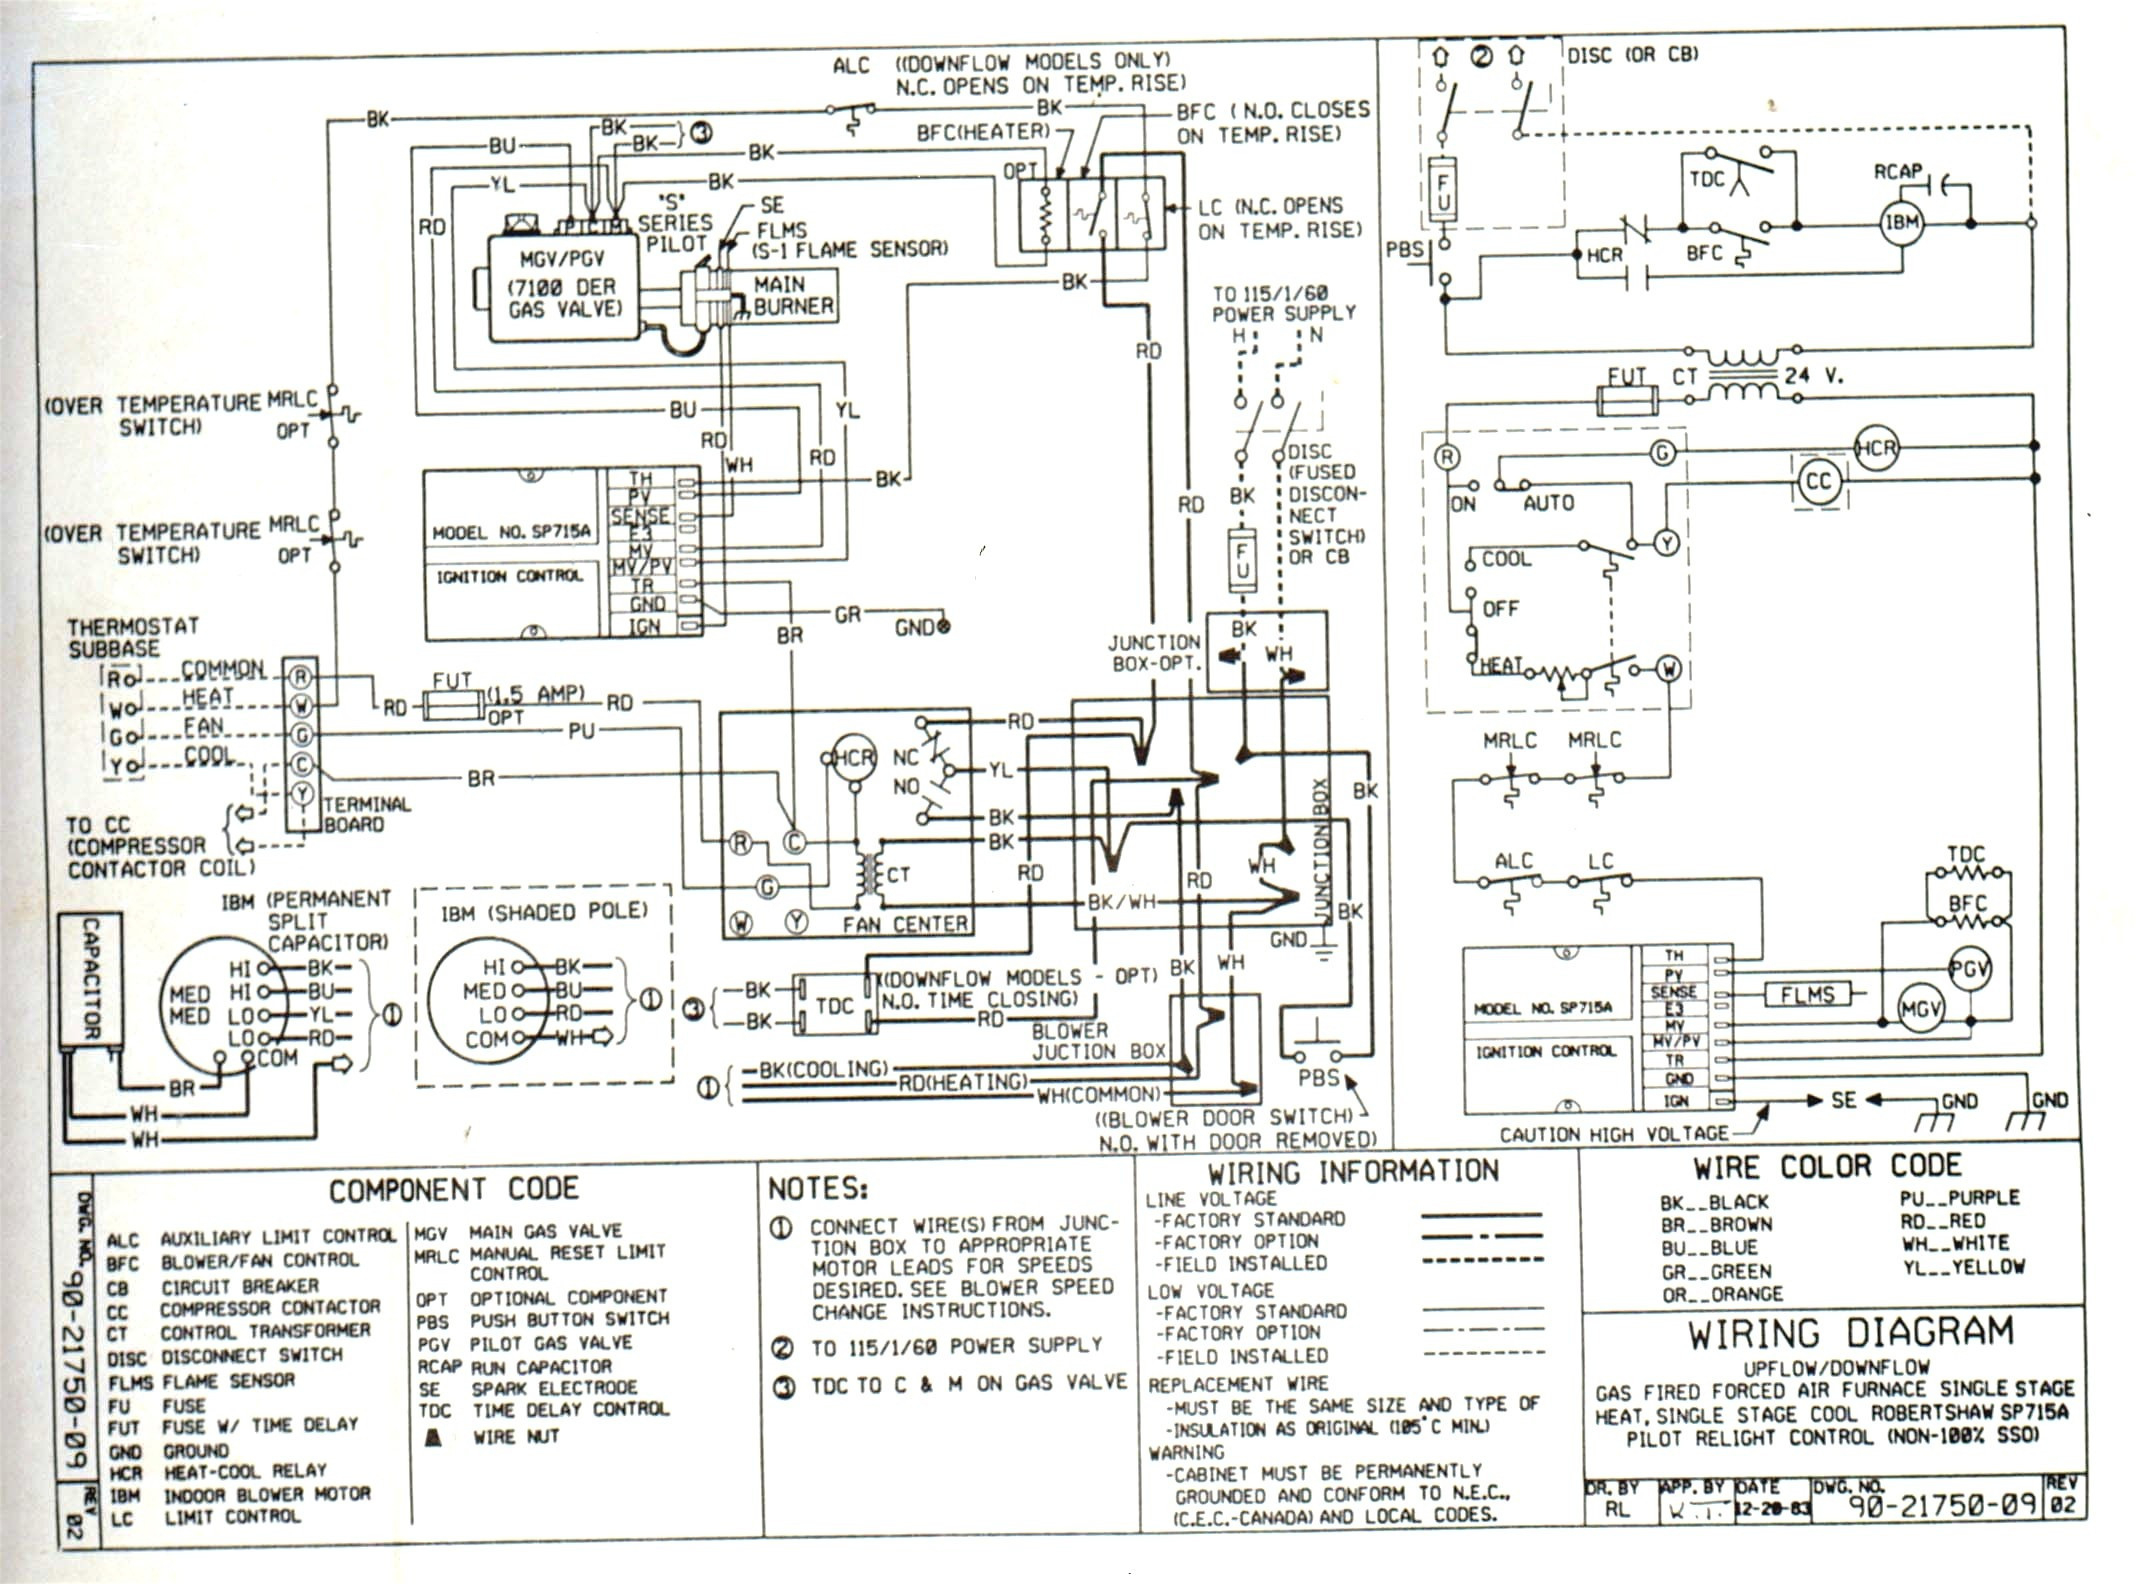 Kenwood Wiring Diagram Model Kdw | Wiring Diagram on kenwood power supply, kenwood remote control, kenwood wiring-diagram, kenwood instruction manual, kenwood ddx6019,